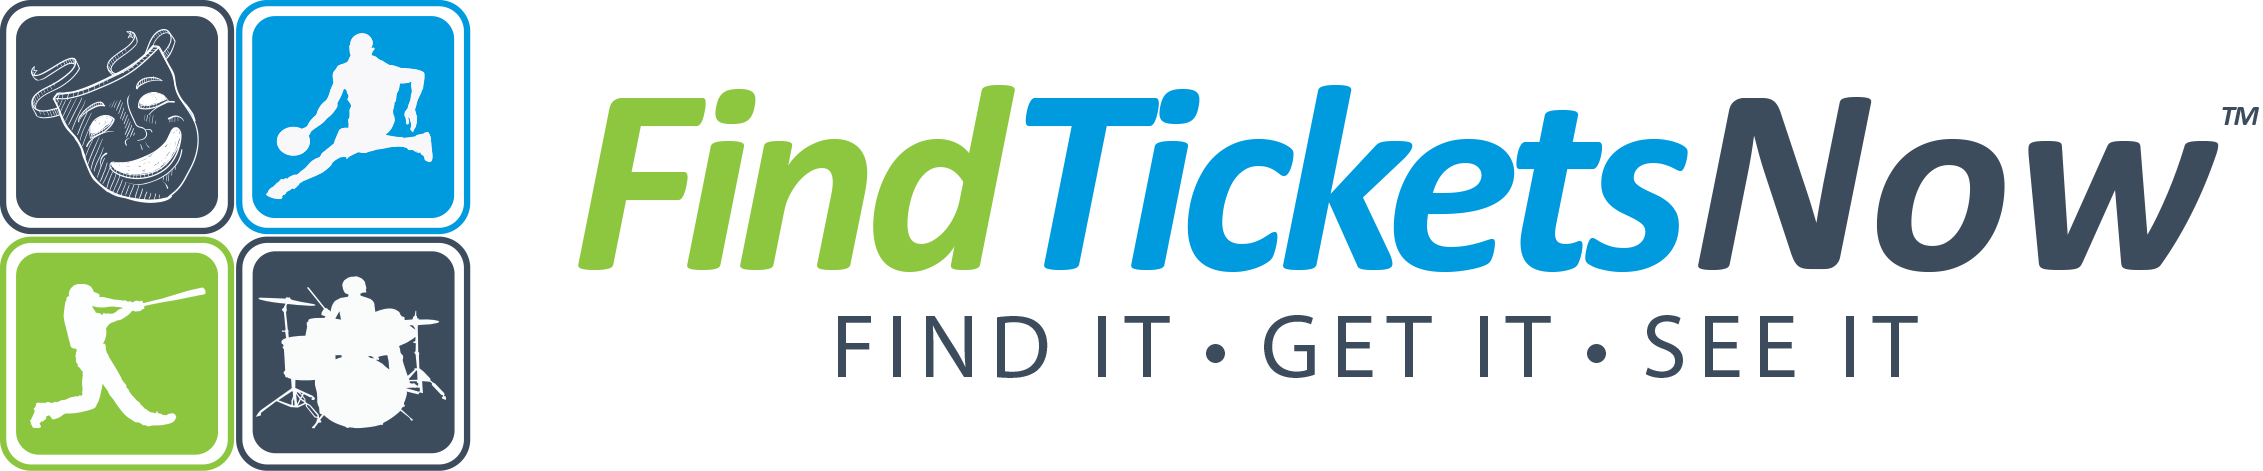 Find Tickets Now Blog